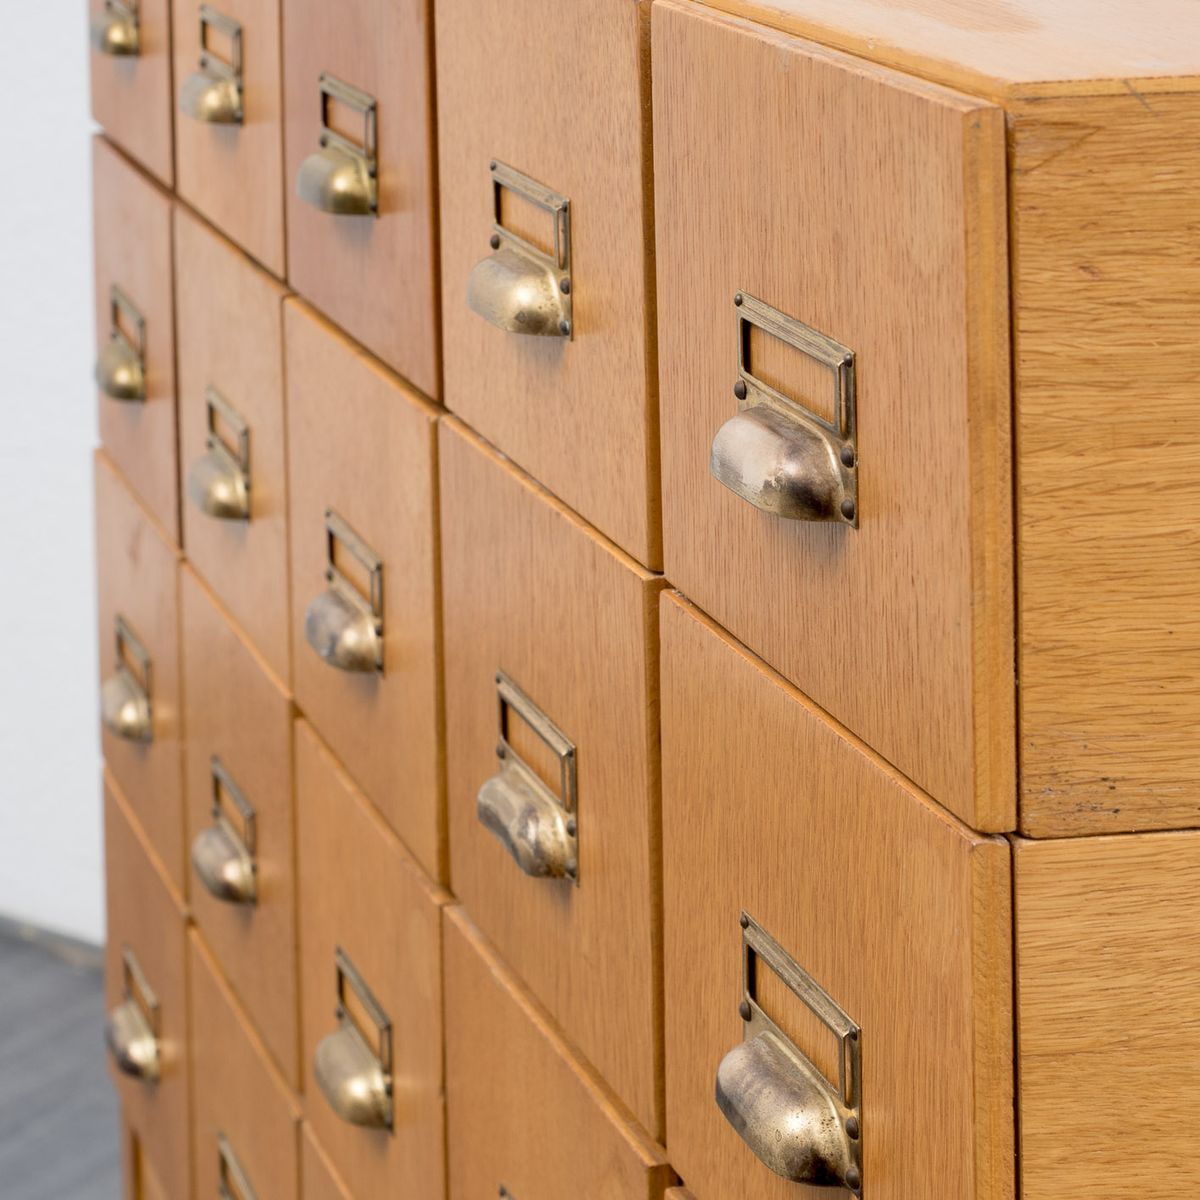 Superb img of Industrial Oak Drawers Cabinet 1950s for sale at Pamono with #734418 color and 1200x1200 pixels